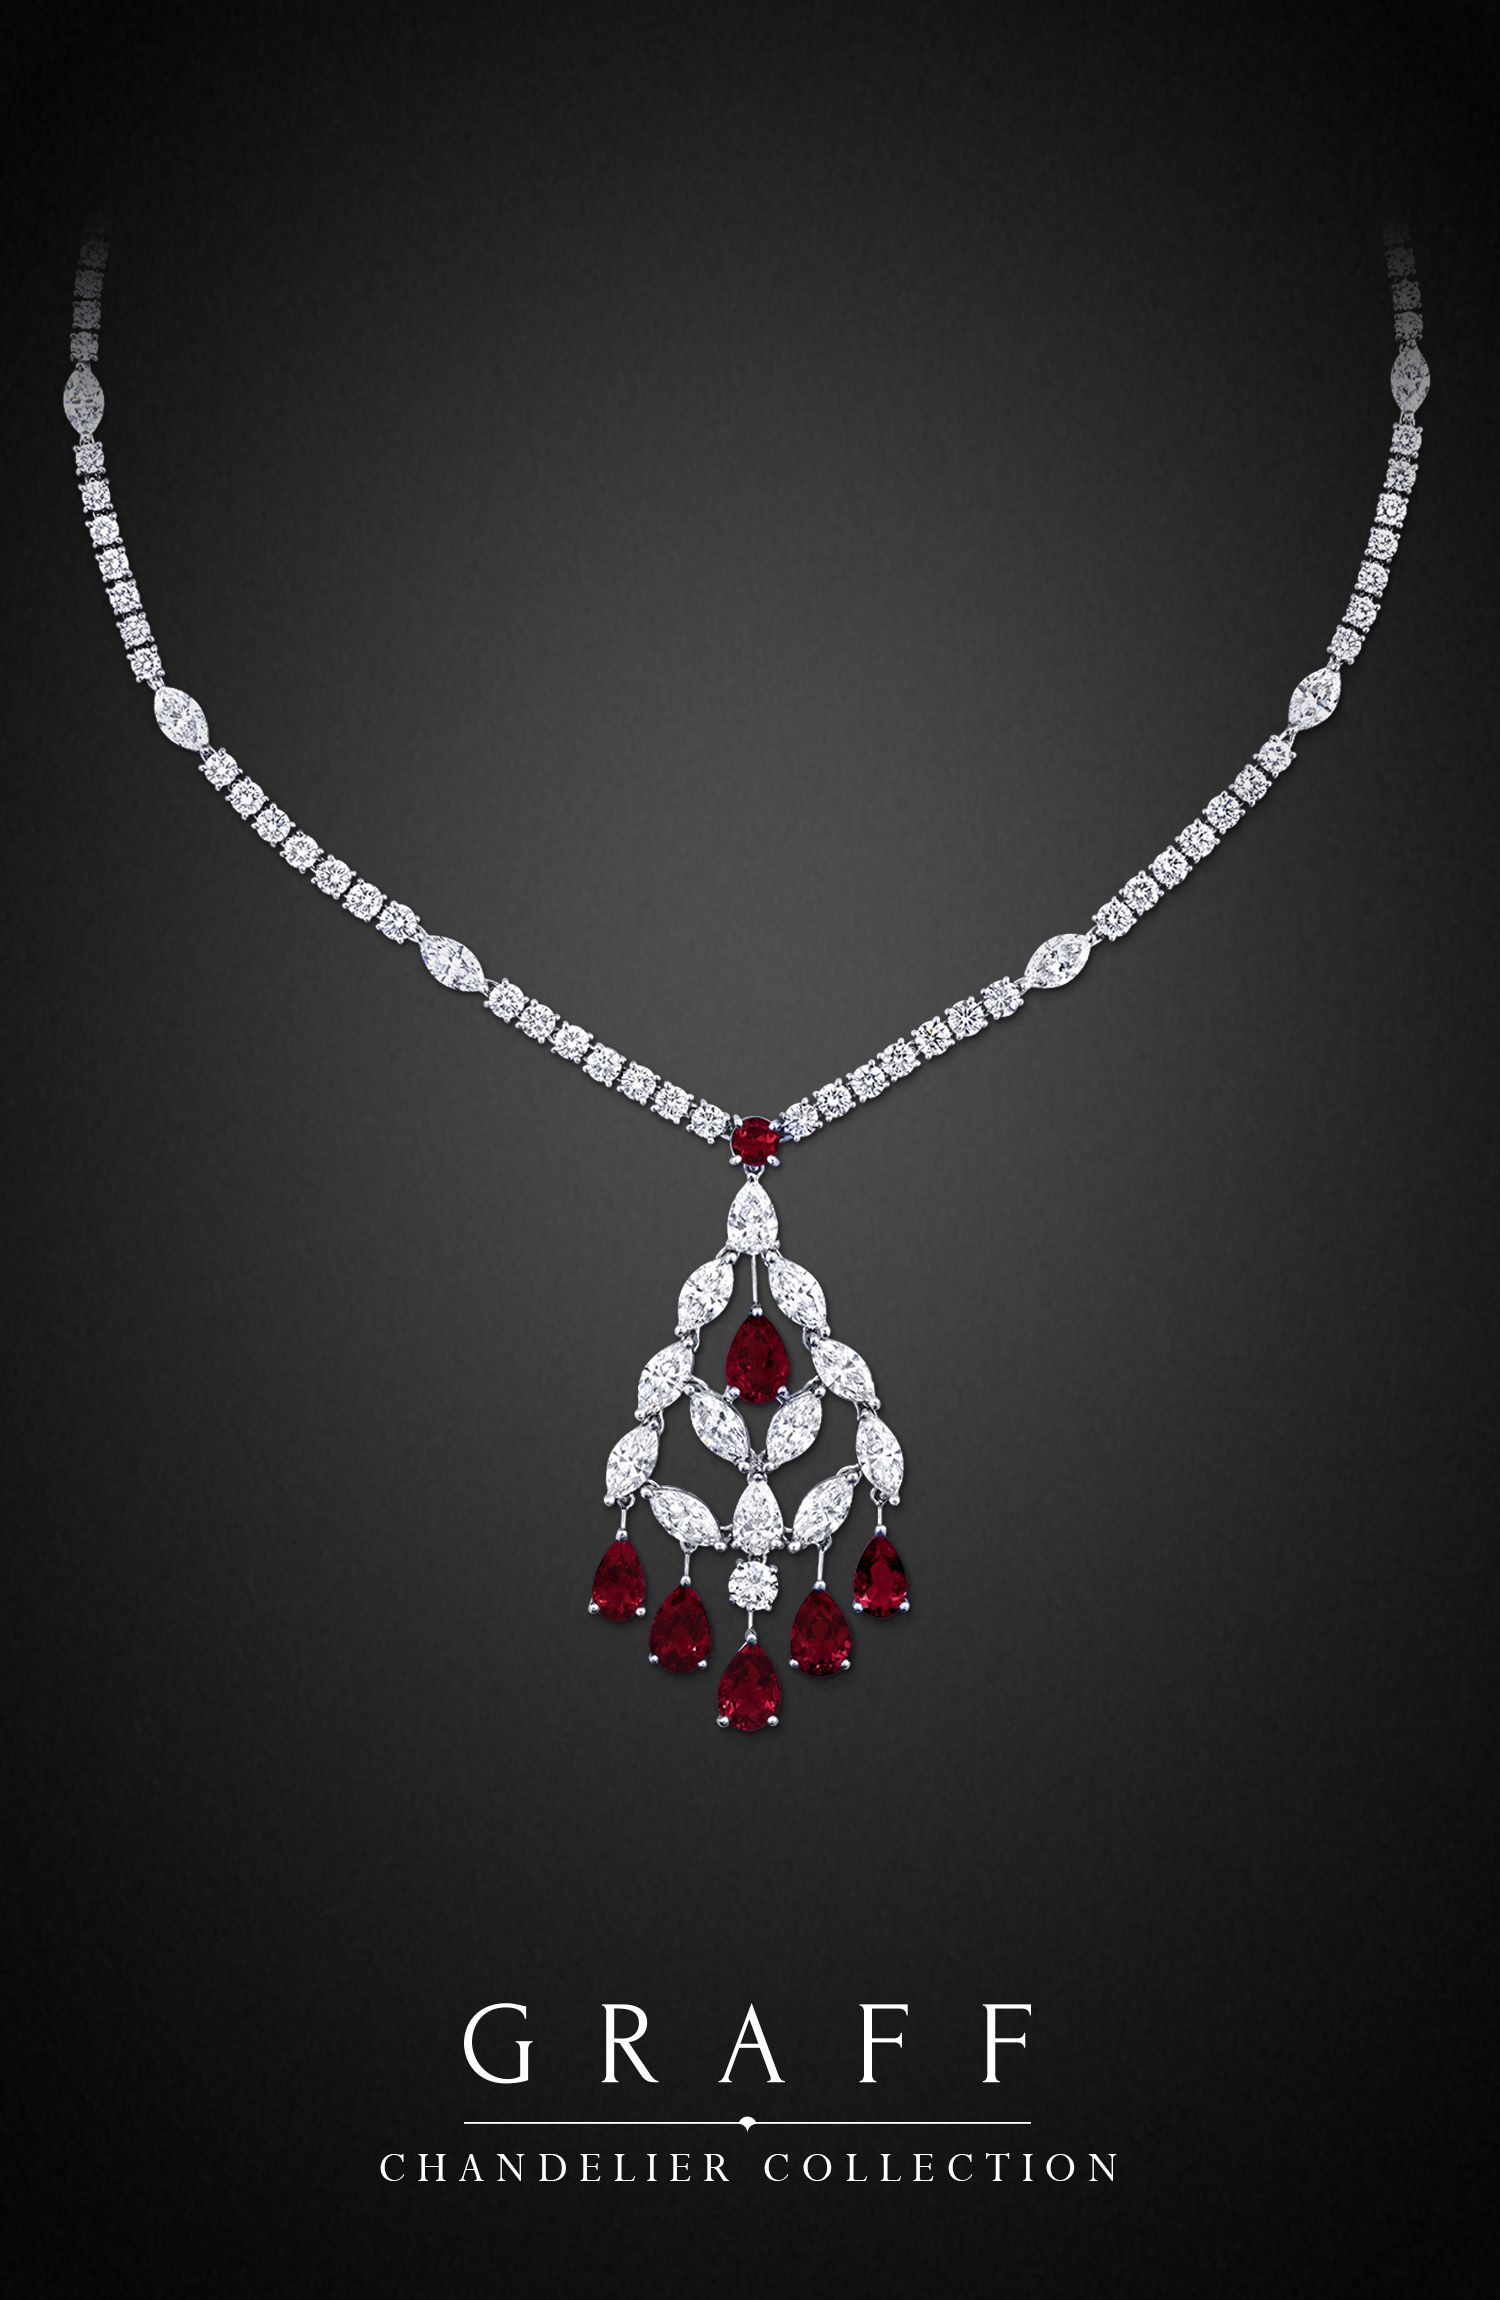 Chandelier necklace chandeliers diamond and jewel graff diamonds chandelier necklace aloadofball Choice Image